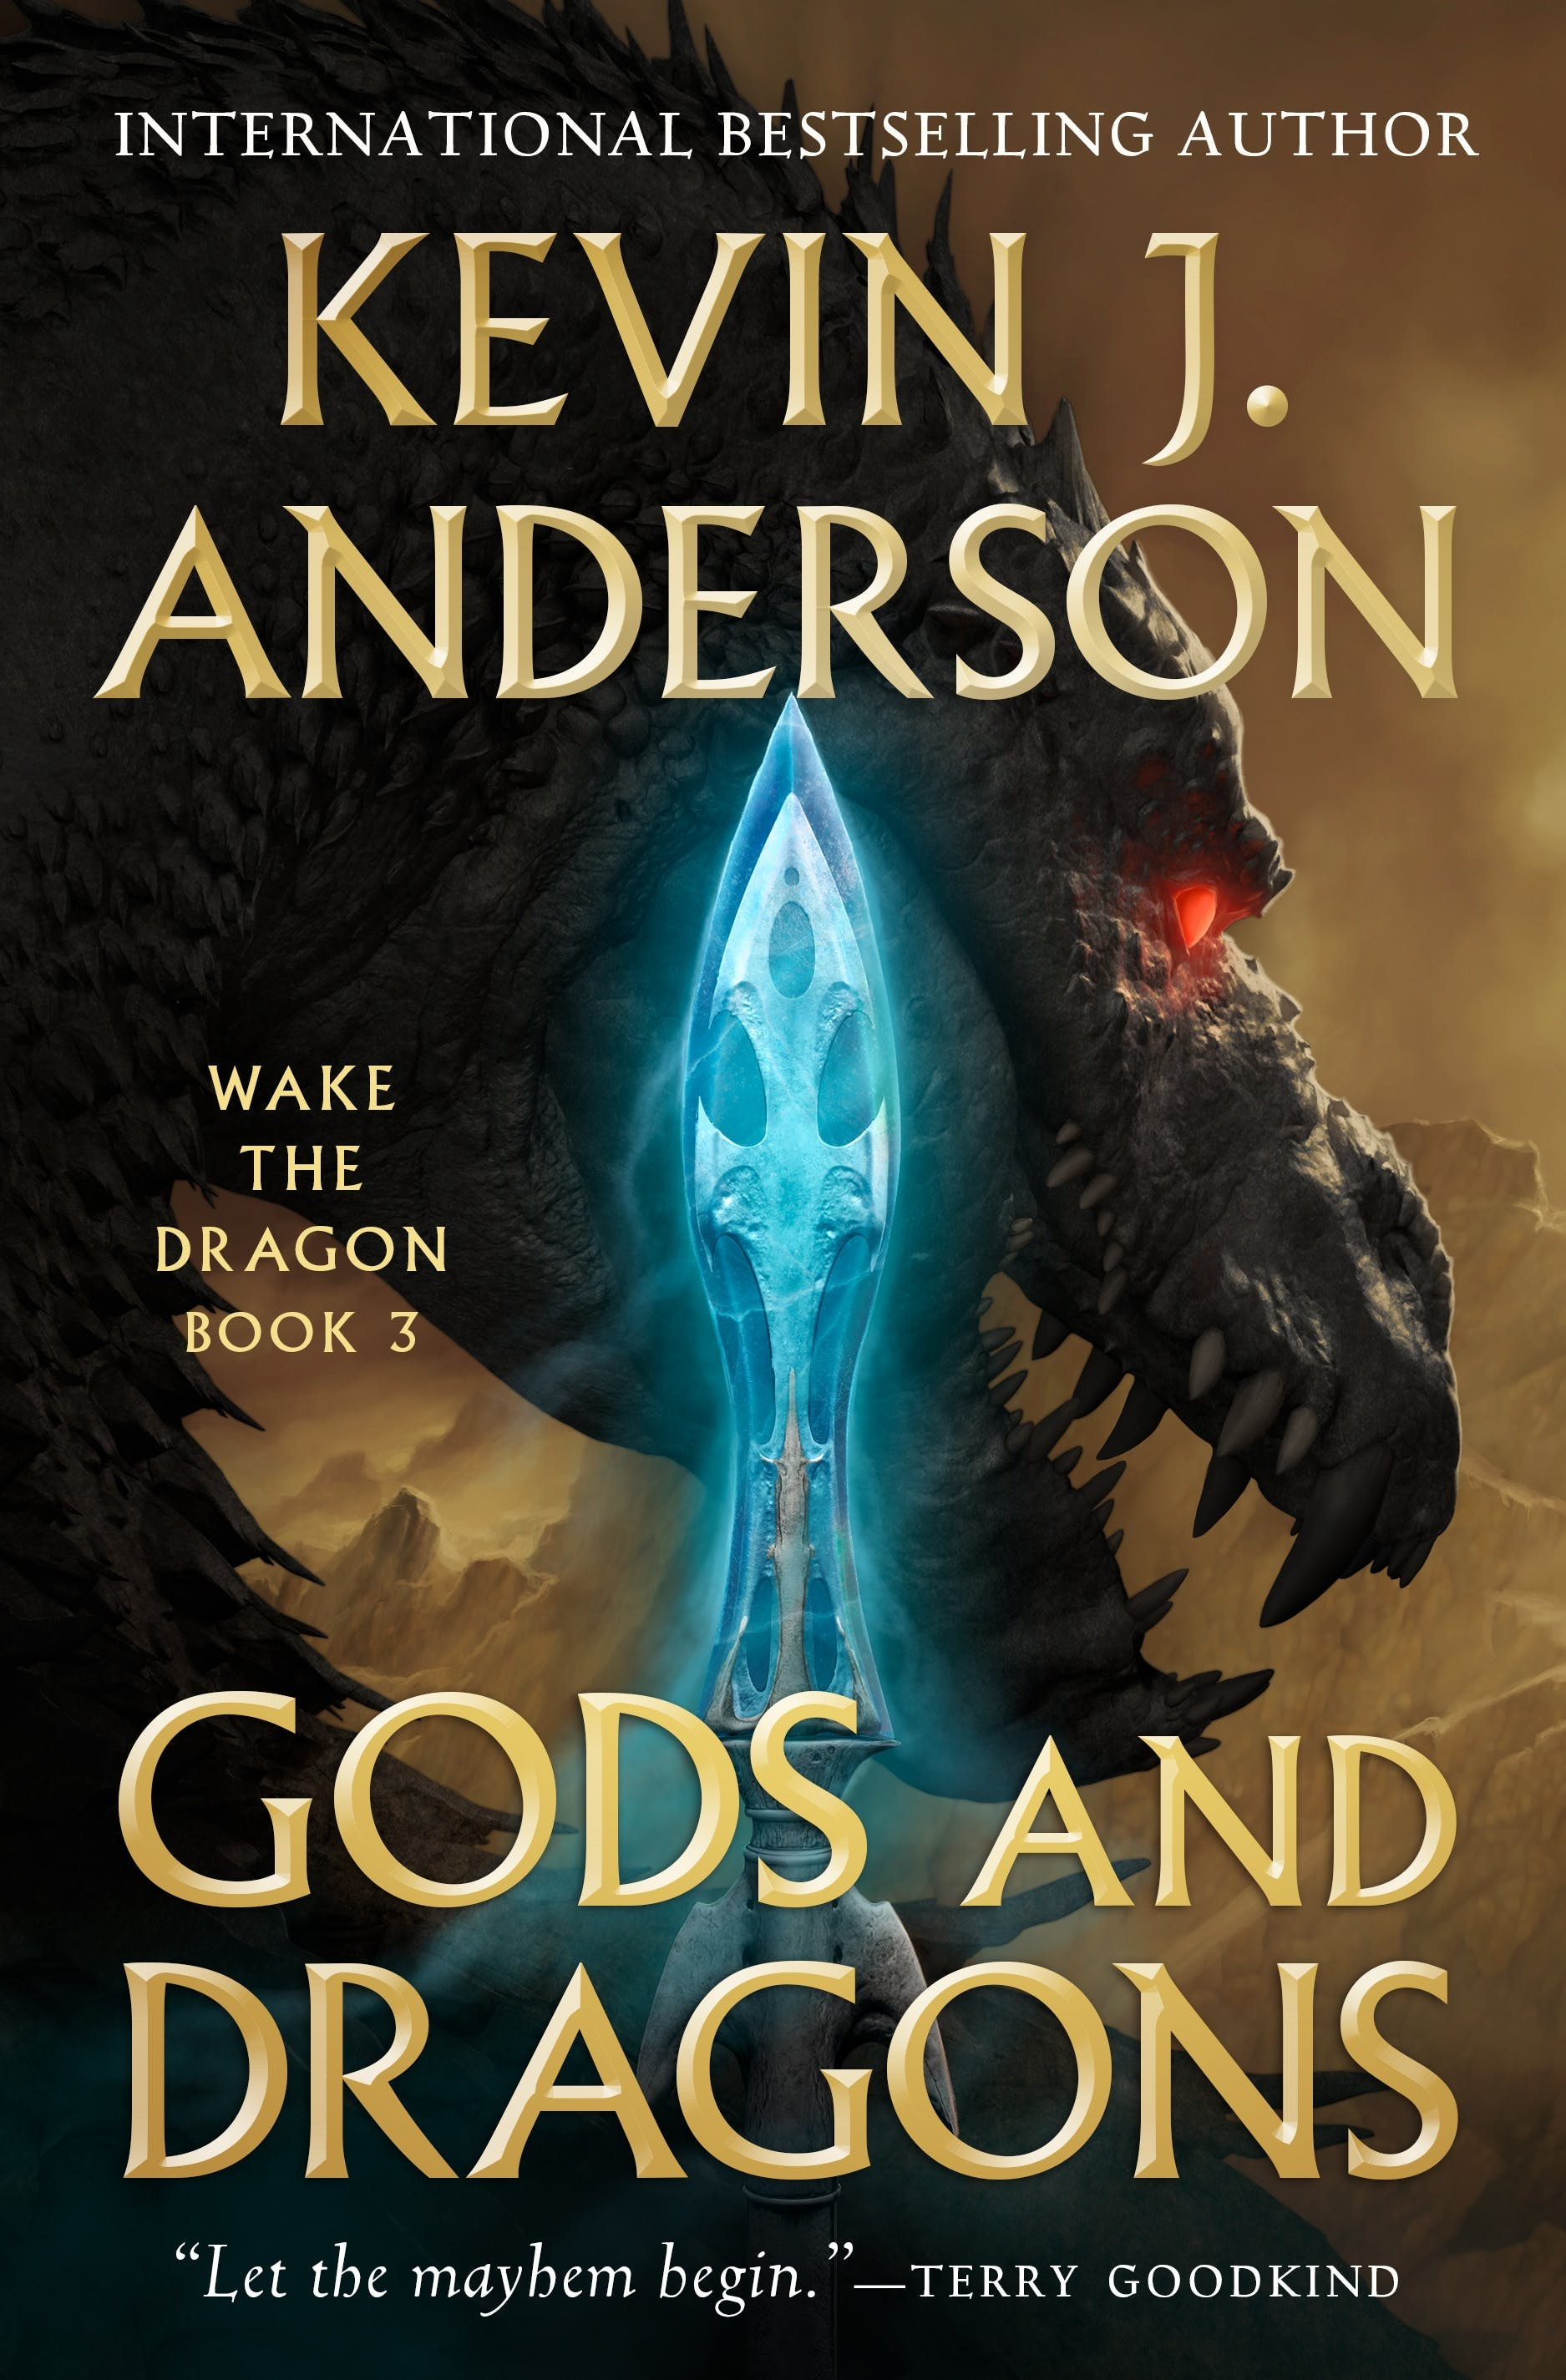 Image of Gods and Dragons